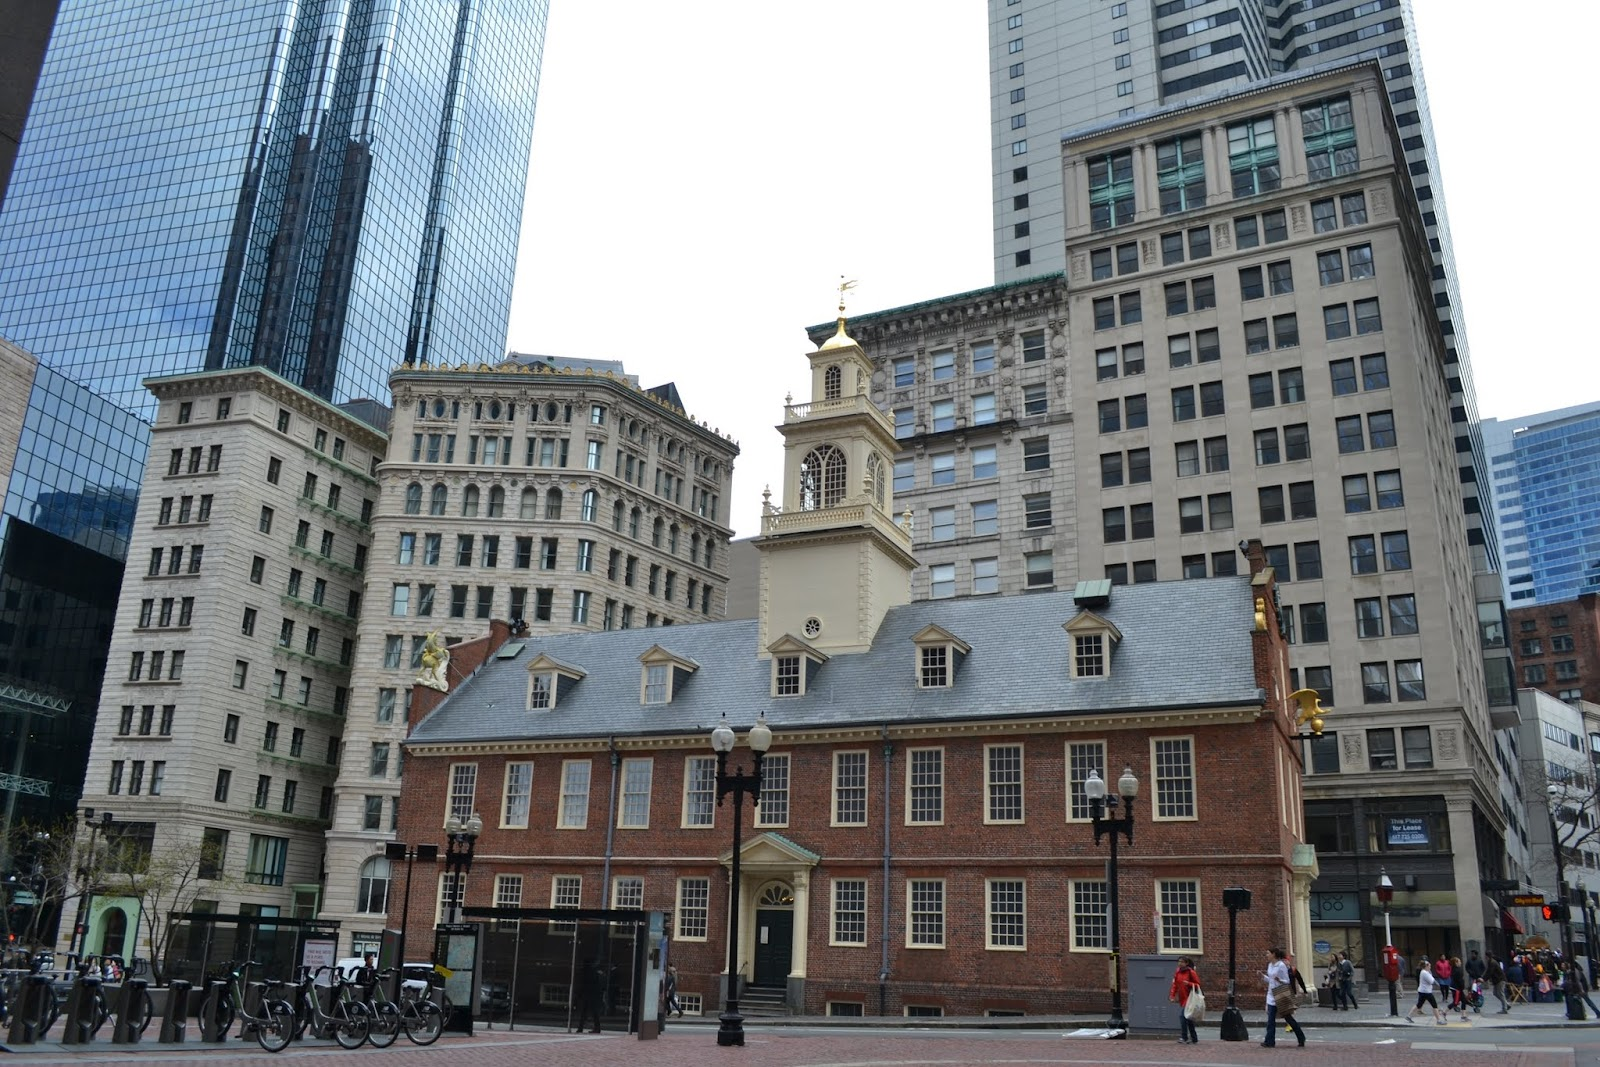 Старый Капитолий, Бостон, Массачусетс (Old State House, Boston)